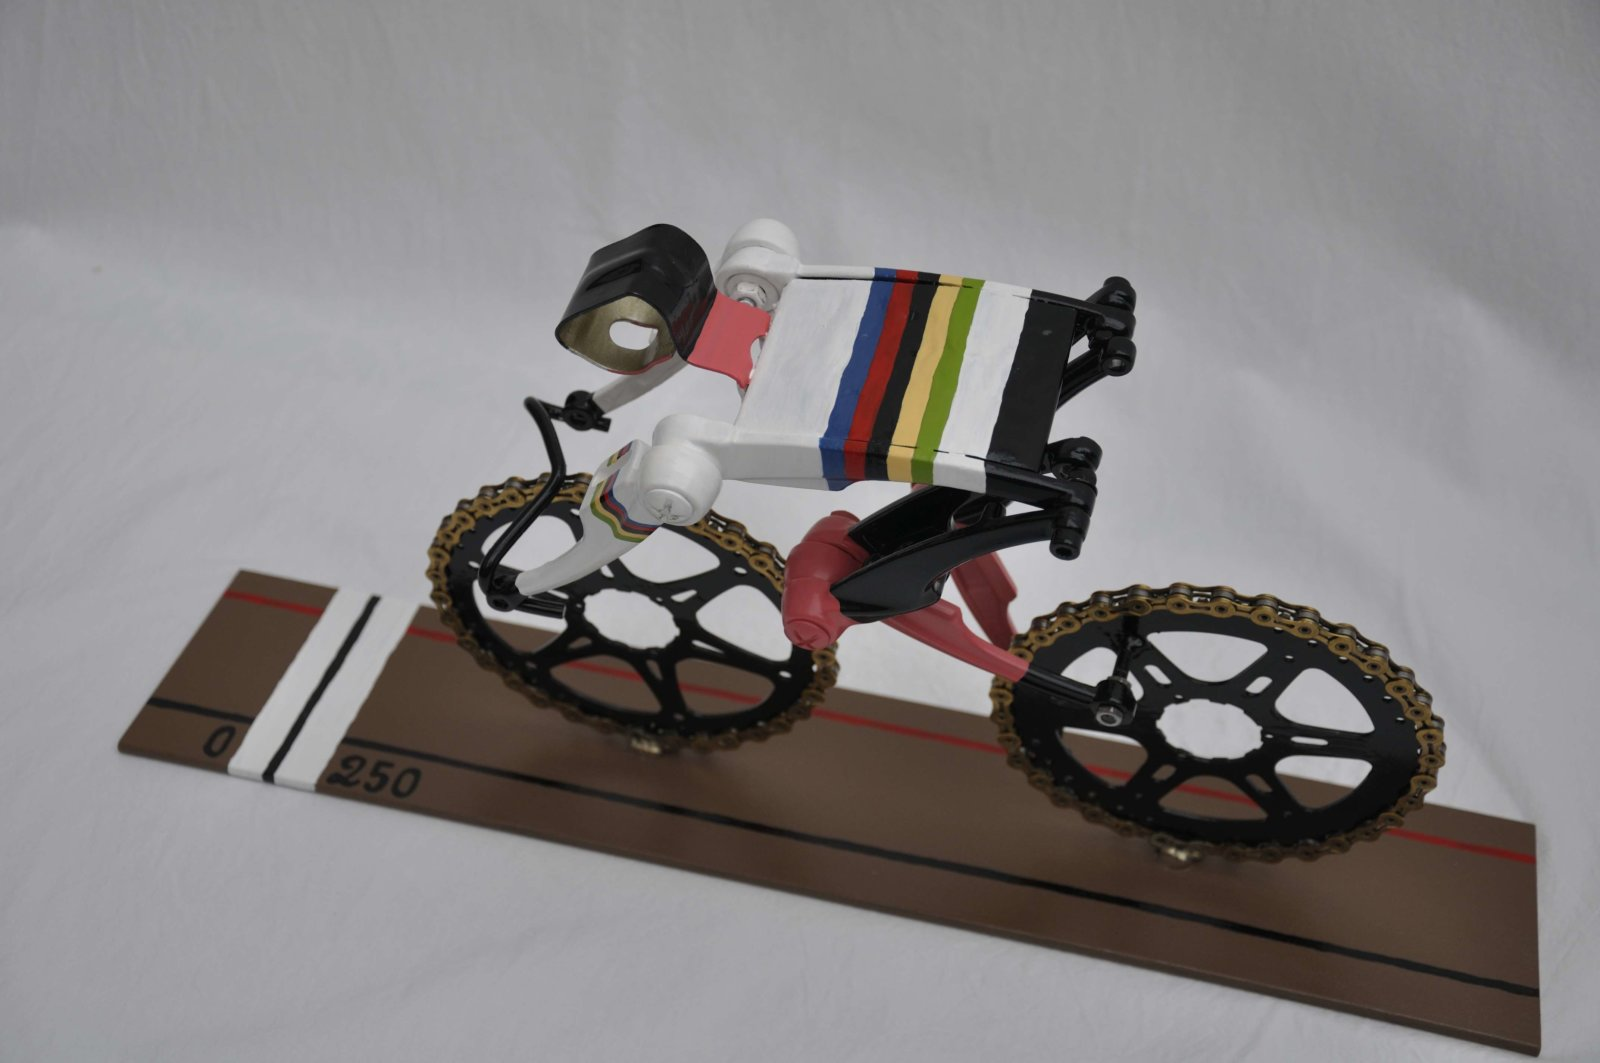 Cycle Art Rainbowjersey Track Cycling Sprinter Made By Decreatievelink